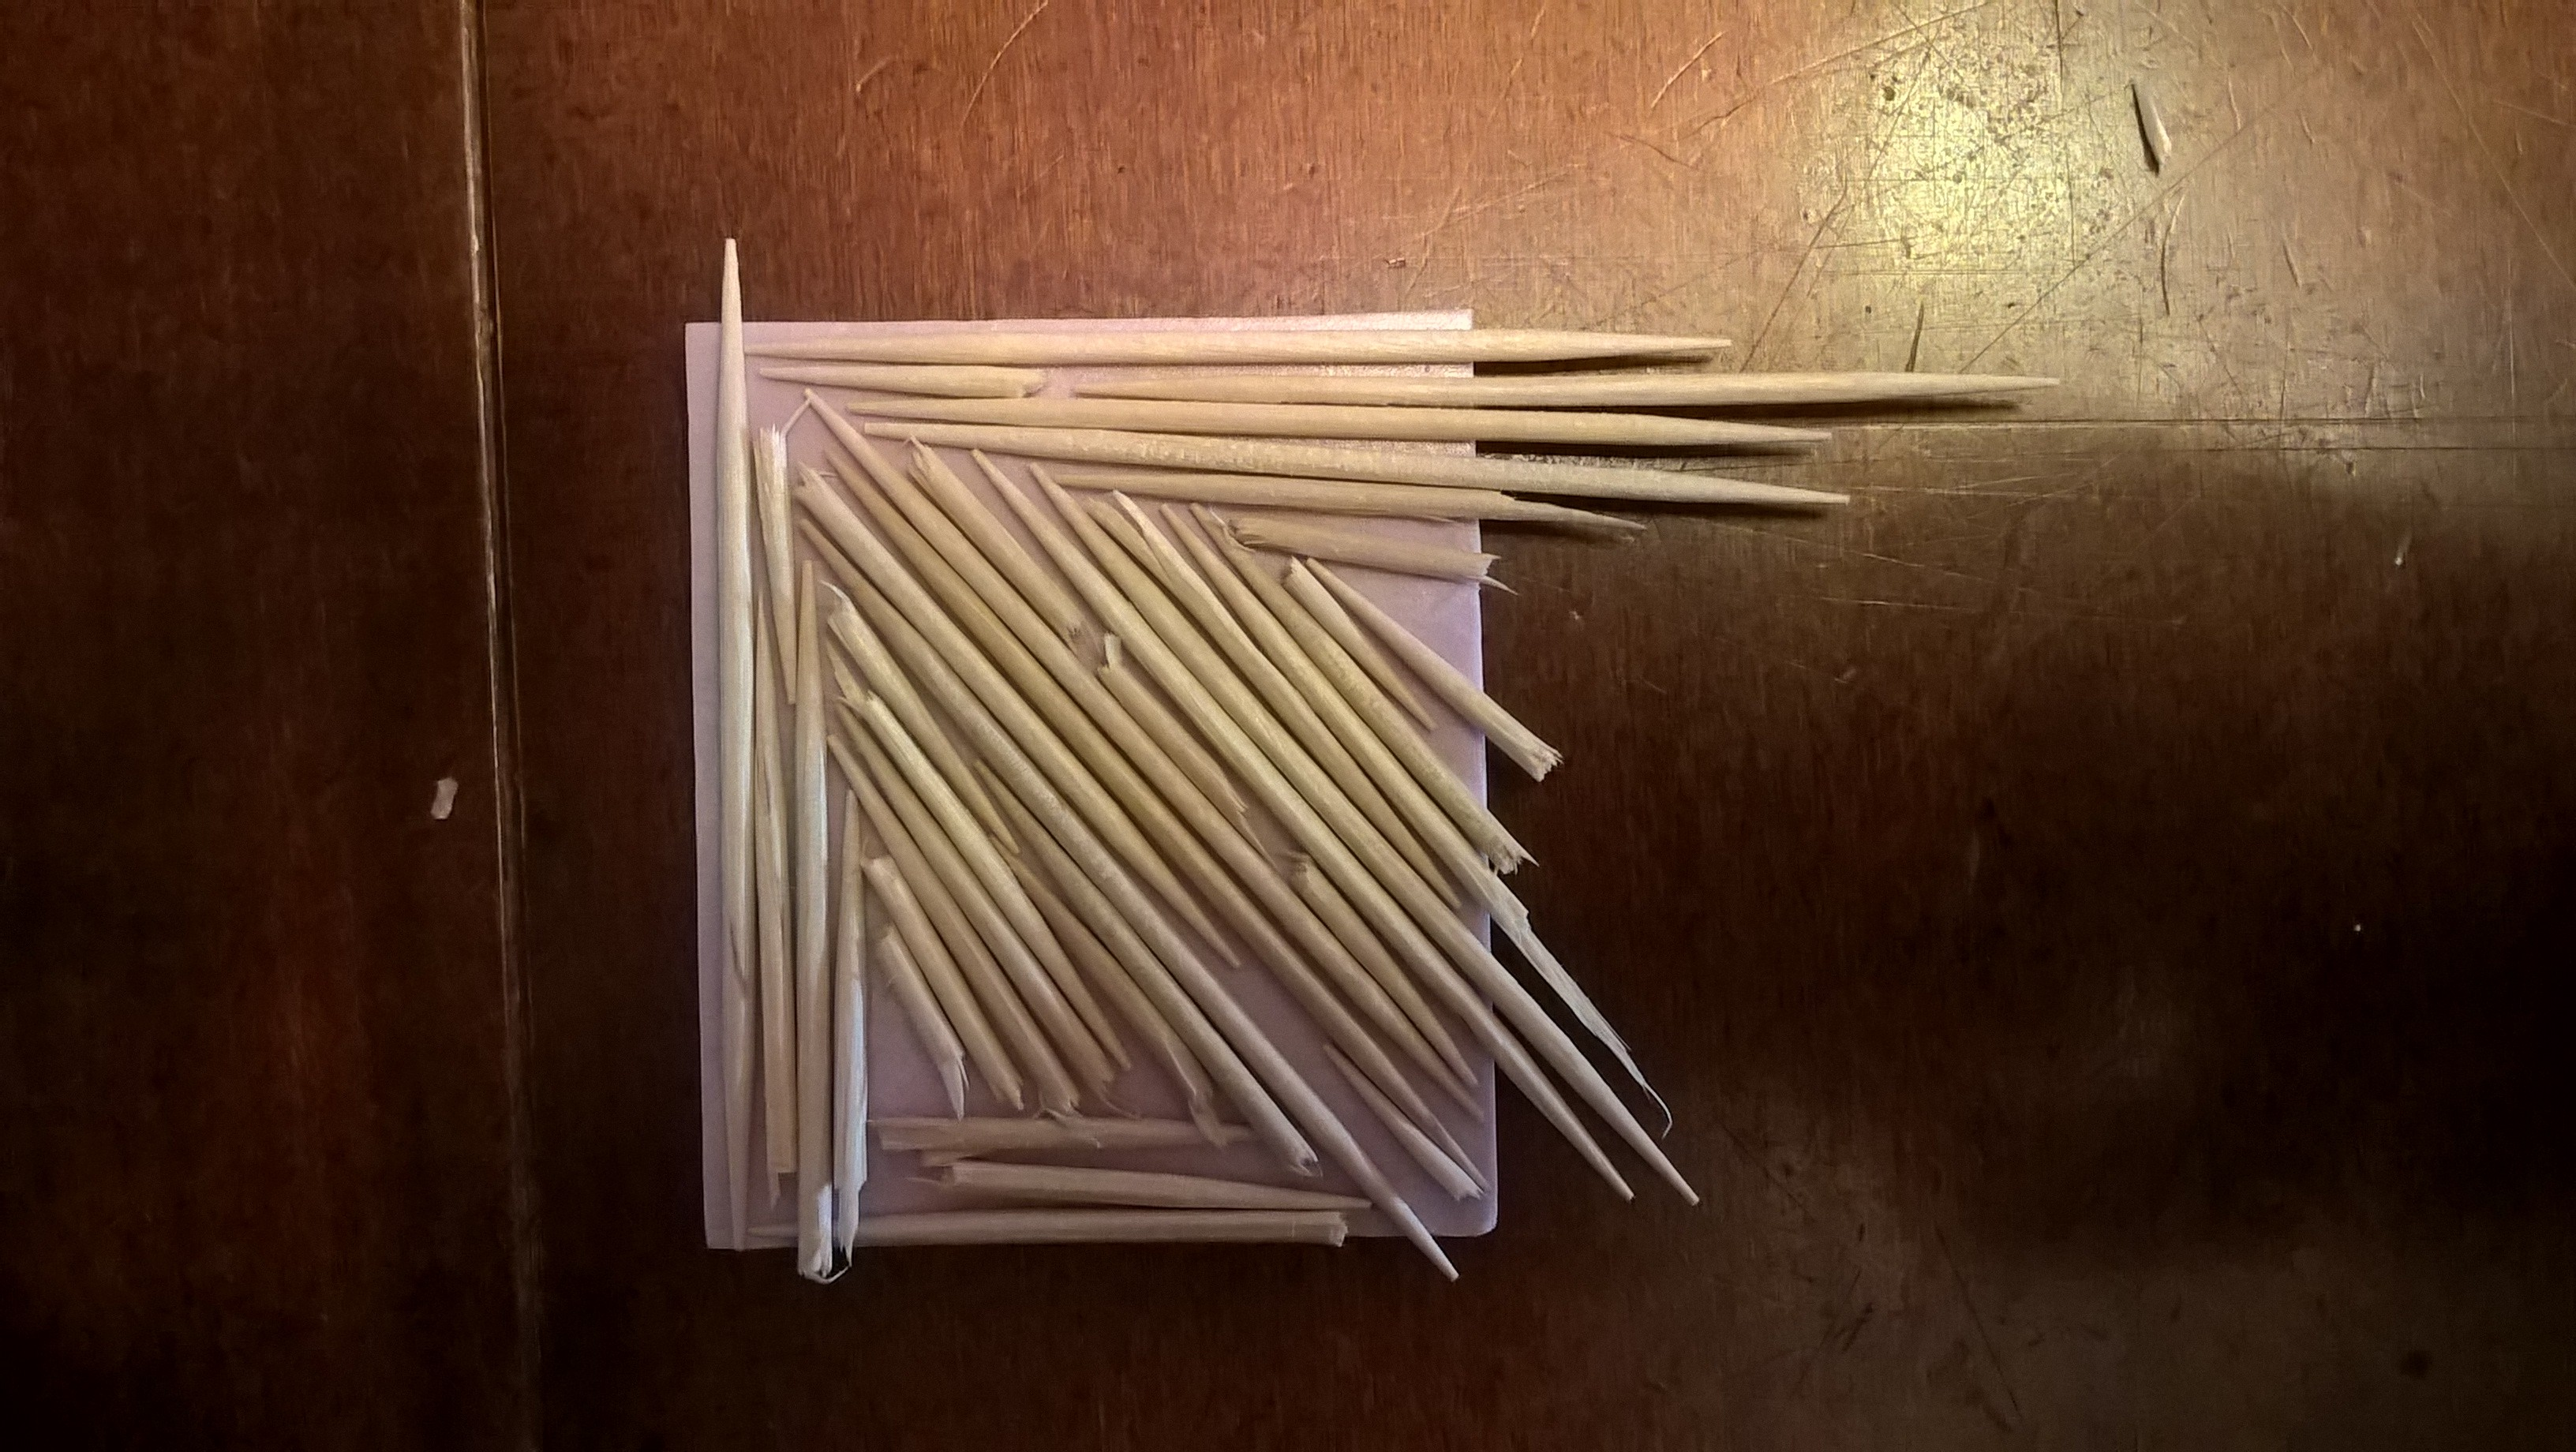 printing plate made with toothpicks